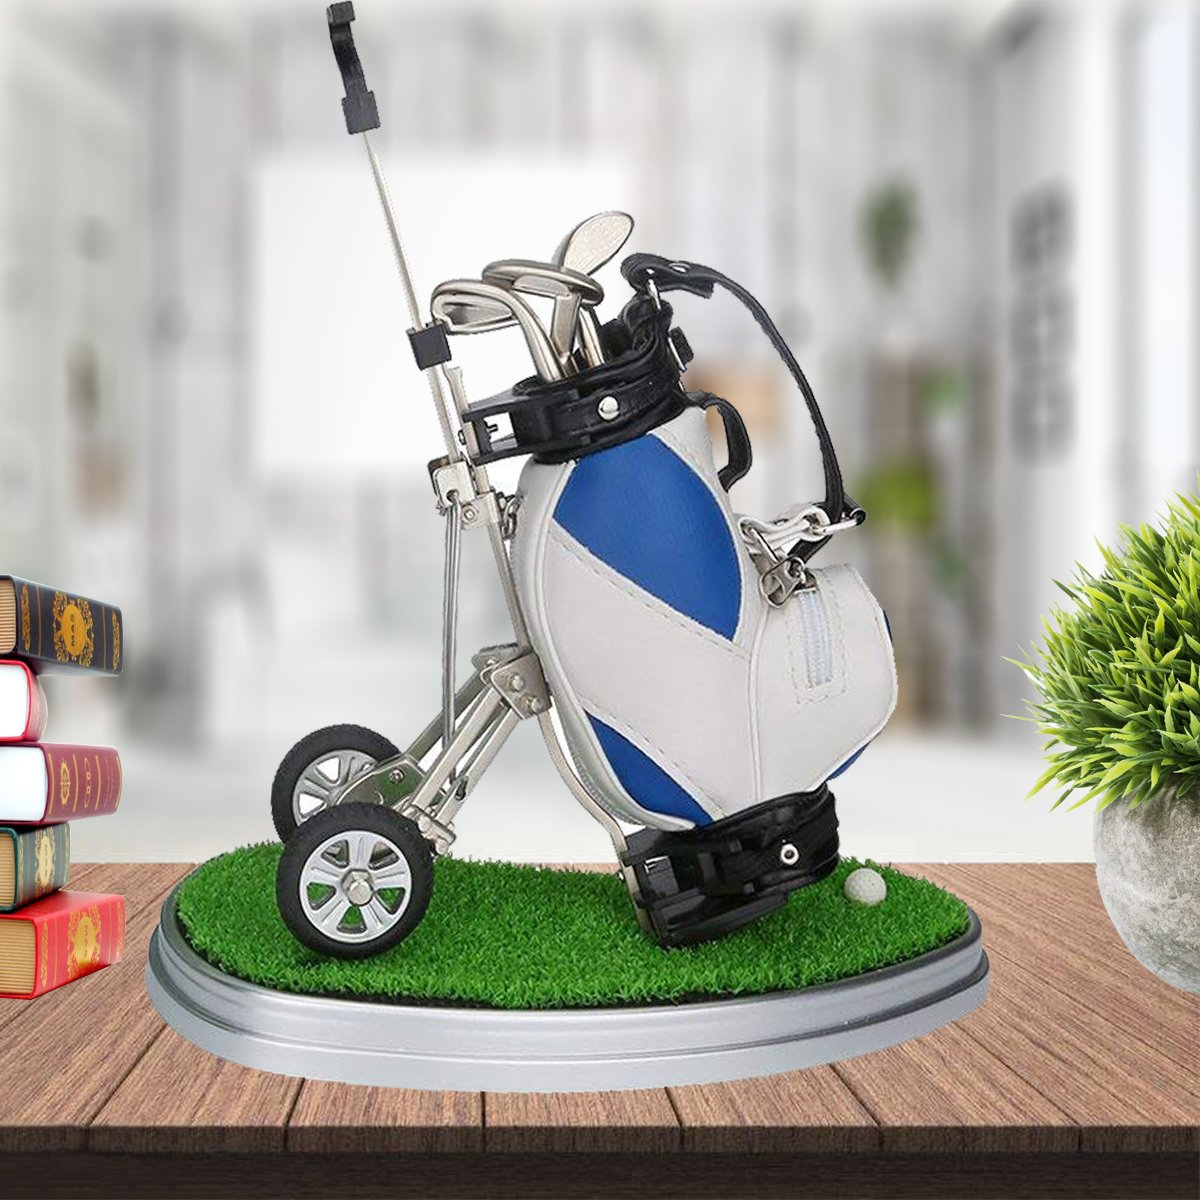 HKOO Golf Gift Golf Pens Holder,Golf Pens with Golf Bag Holder with Model Golf Bag Cart Pen Holder on golf cart trophy, forklift pen holder, golf cart tape dispenser, golf cart organizer, golf bag pen holder, golf cart radio, golf cart mugs, golf cart batteries, golf cart keychain, golf cart bags, golf cart tray,